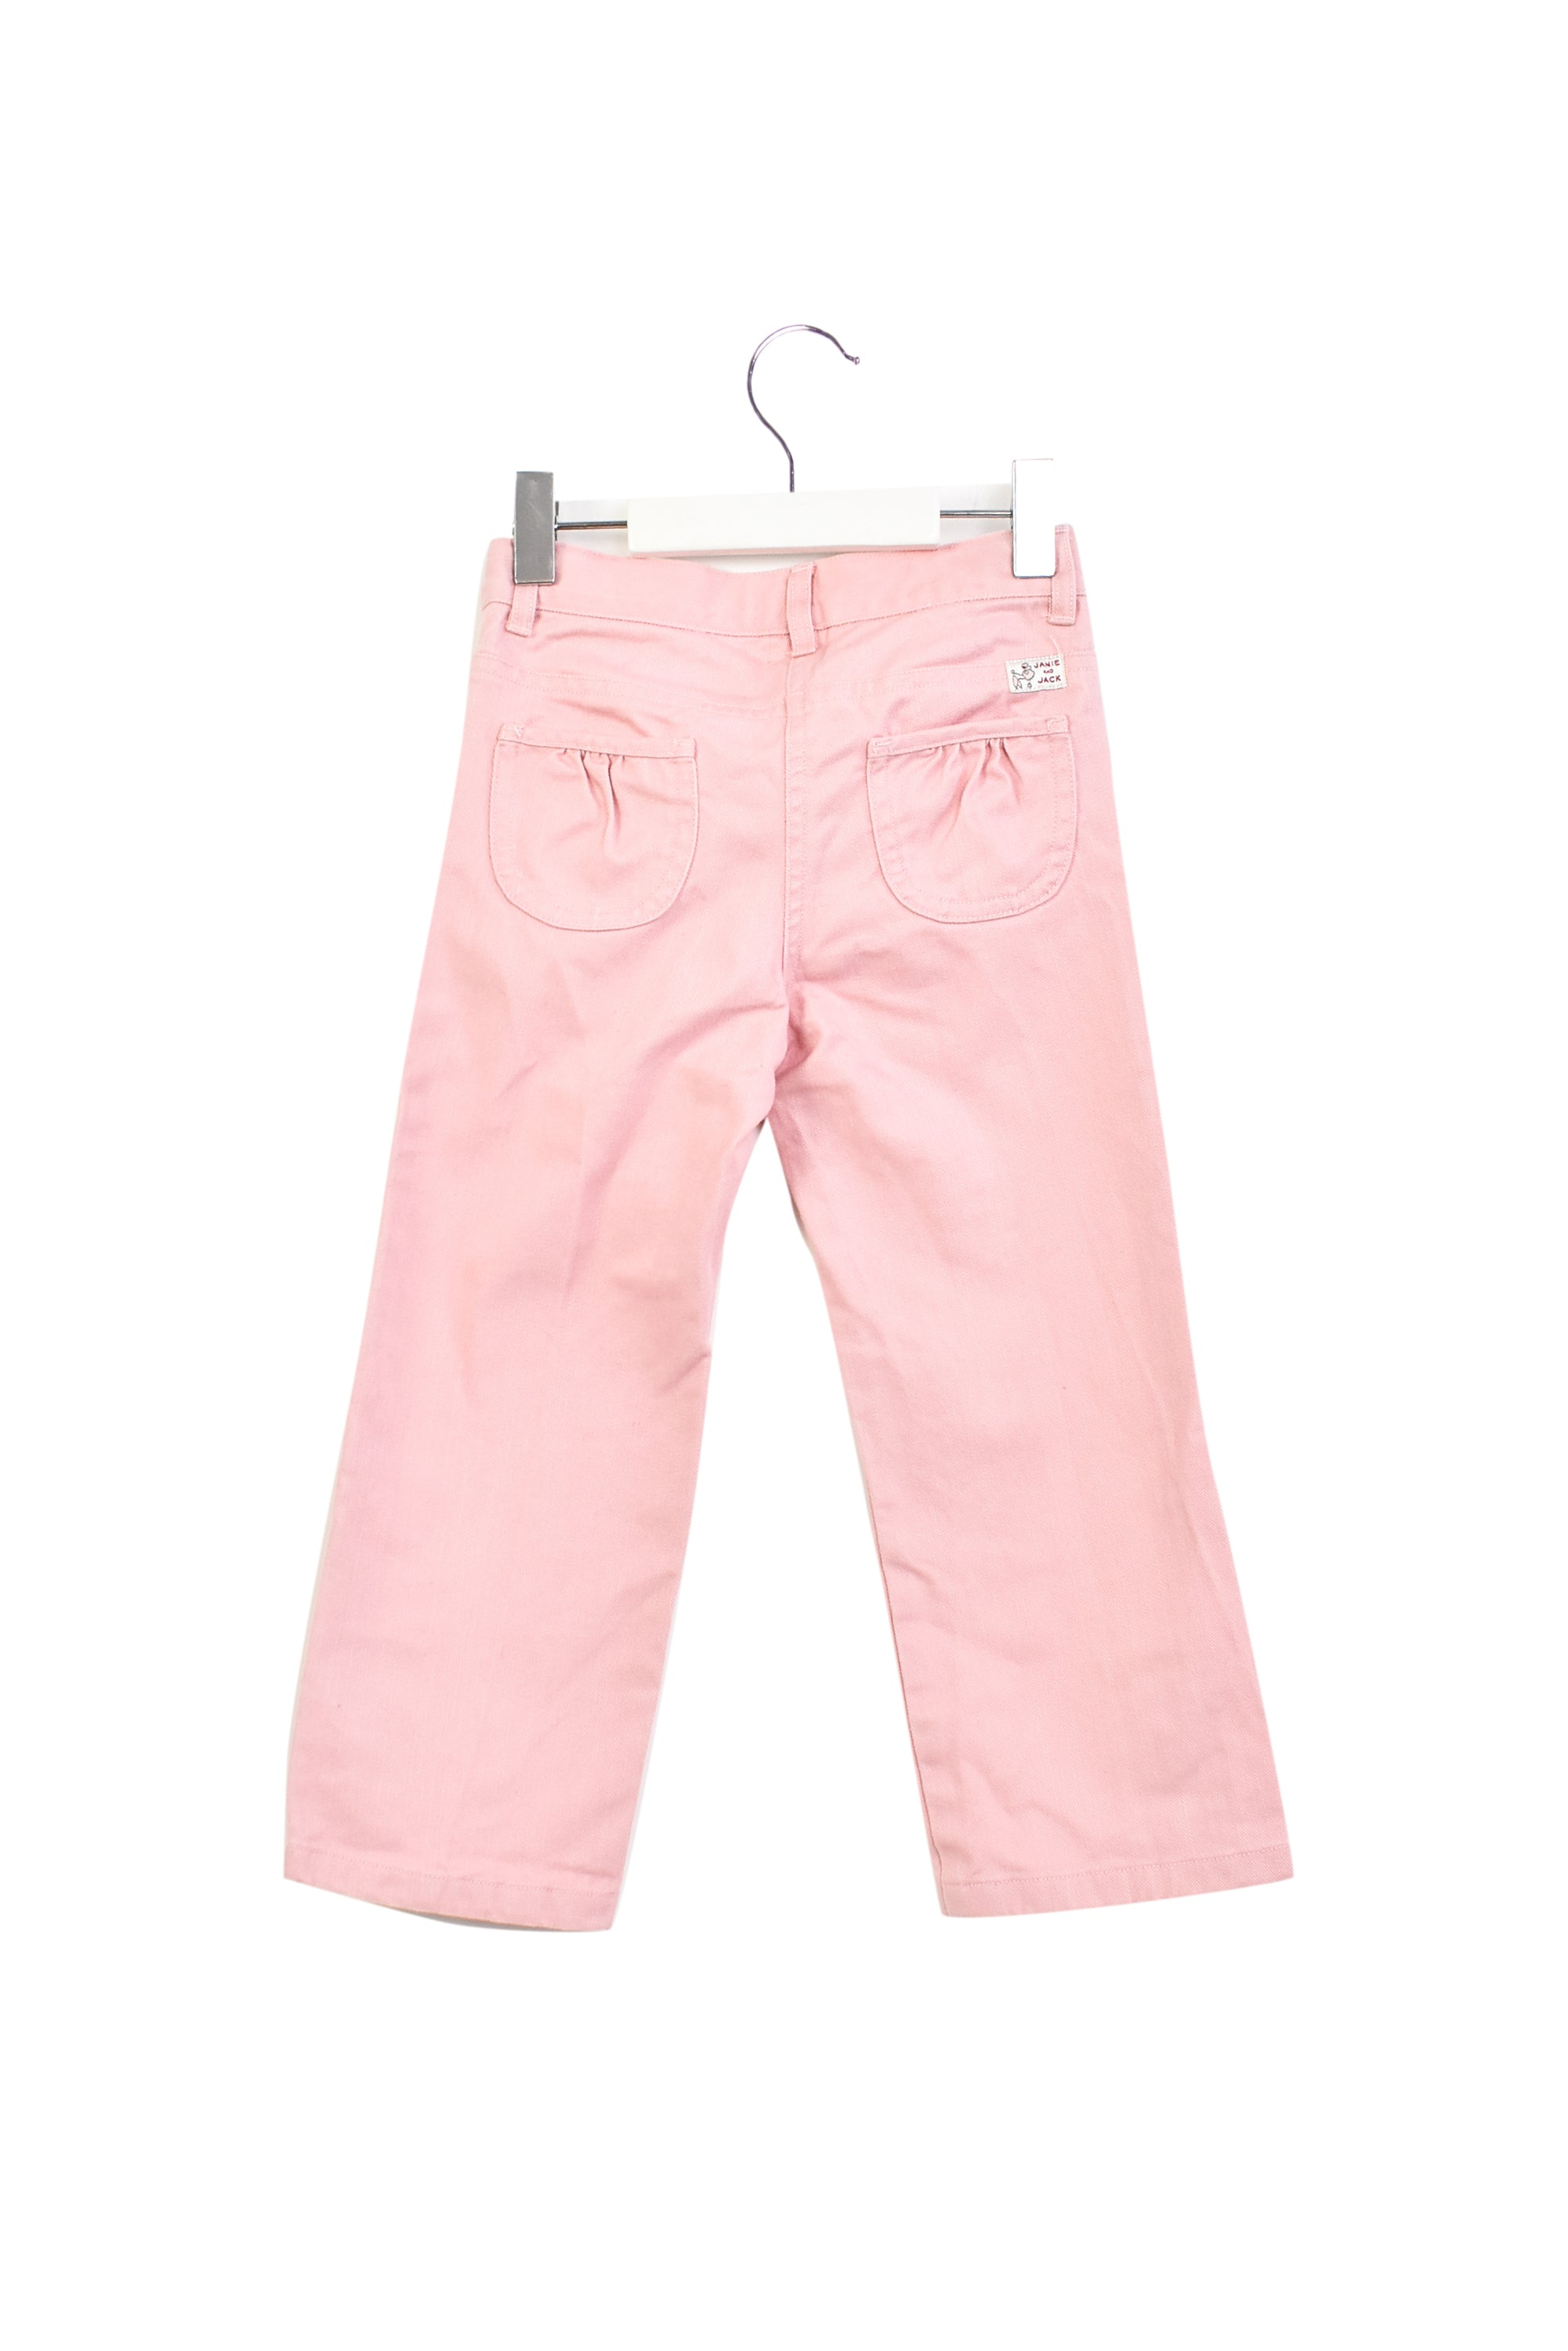 10013271 Janie & Jack Kids ~ Pants 3T at Retykle